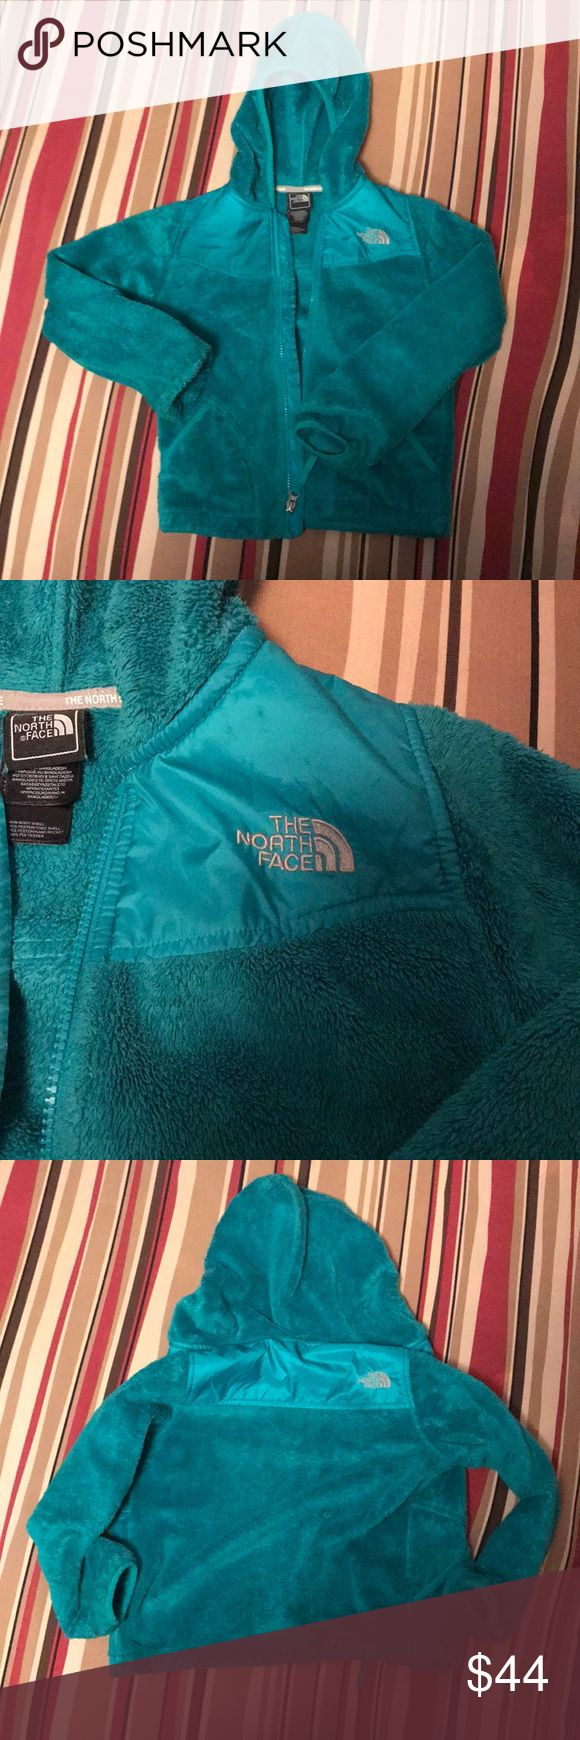 Kid's North Face jacket Comfortable North Face jacket.  Words are wearing off along the inseam of the hood, sight discoloration in some places, and slightly worn on the hands, but besides that it is in good condition overall. Size S (7/8) Beautiful blue - green color North Face Jackets & Coats